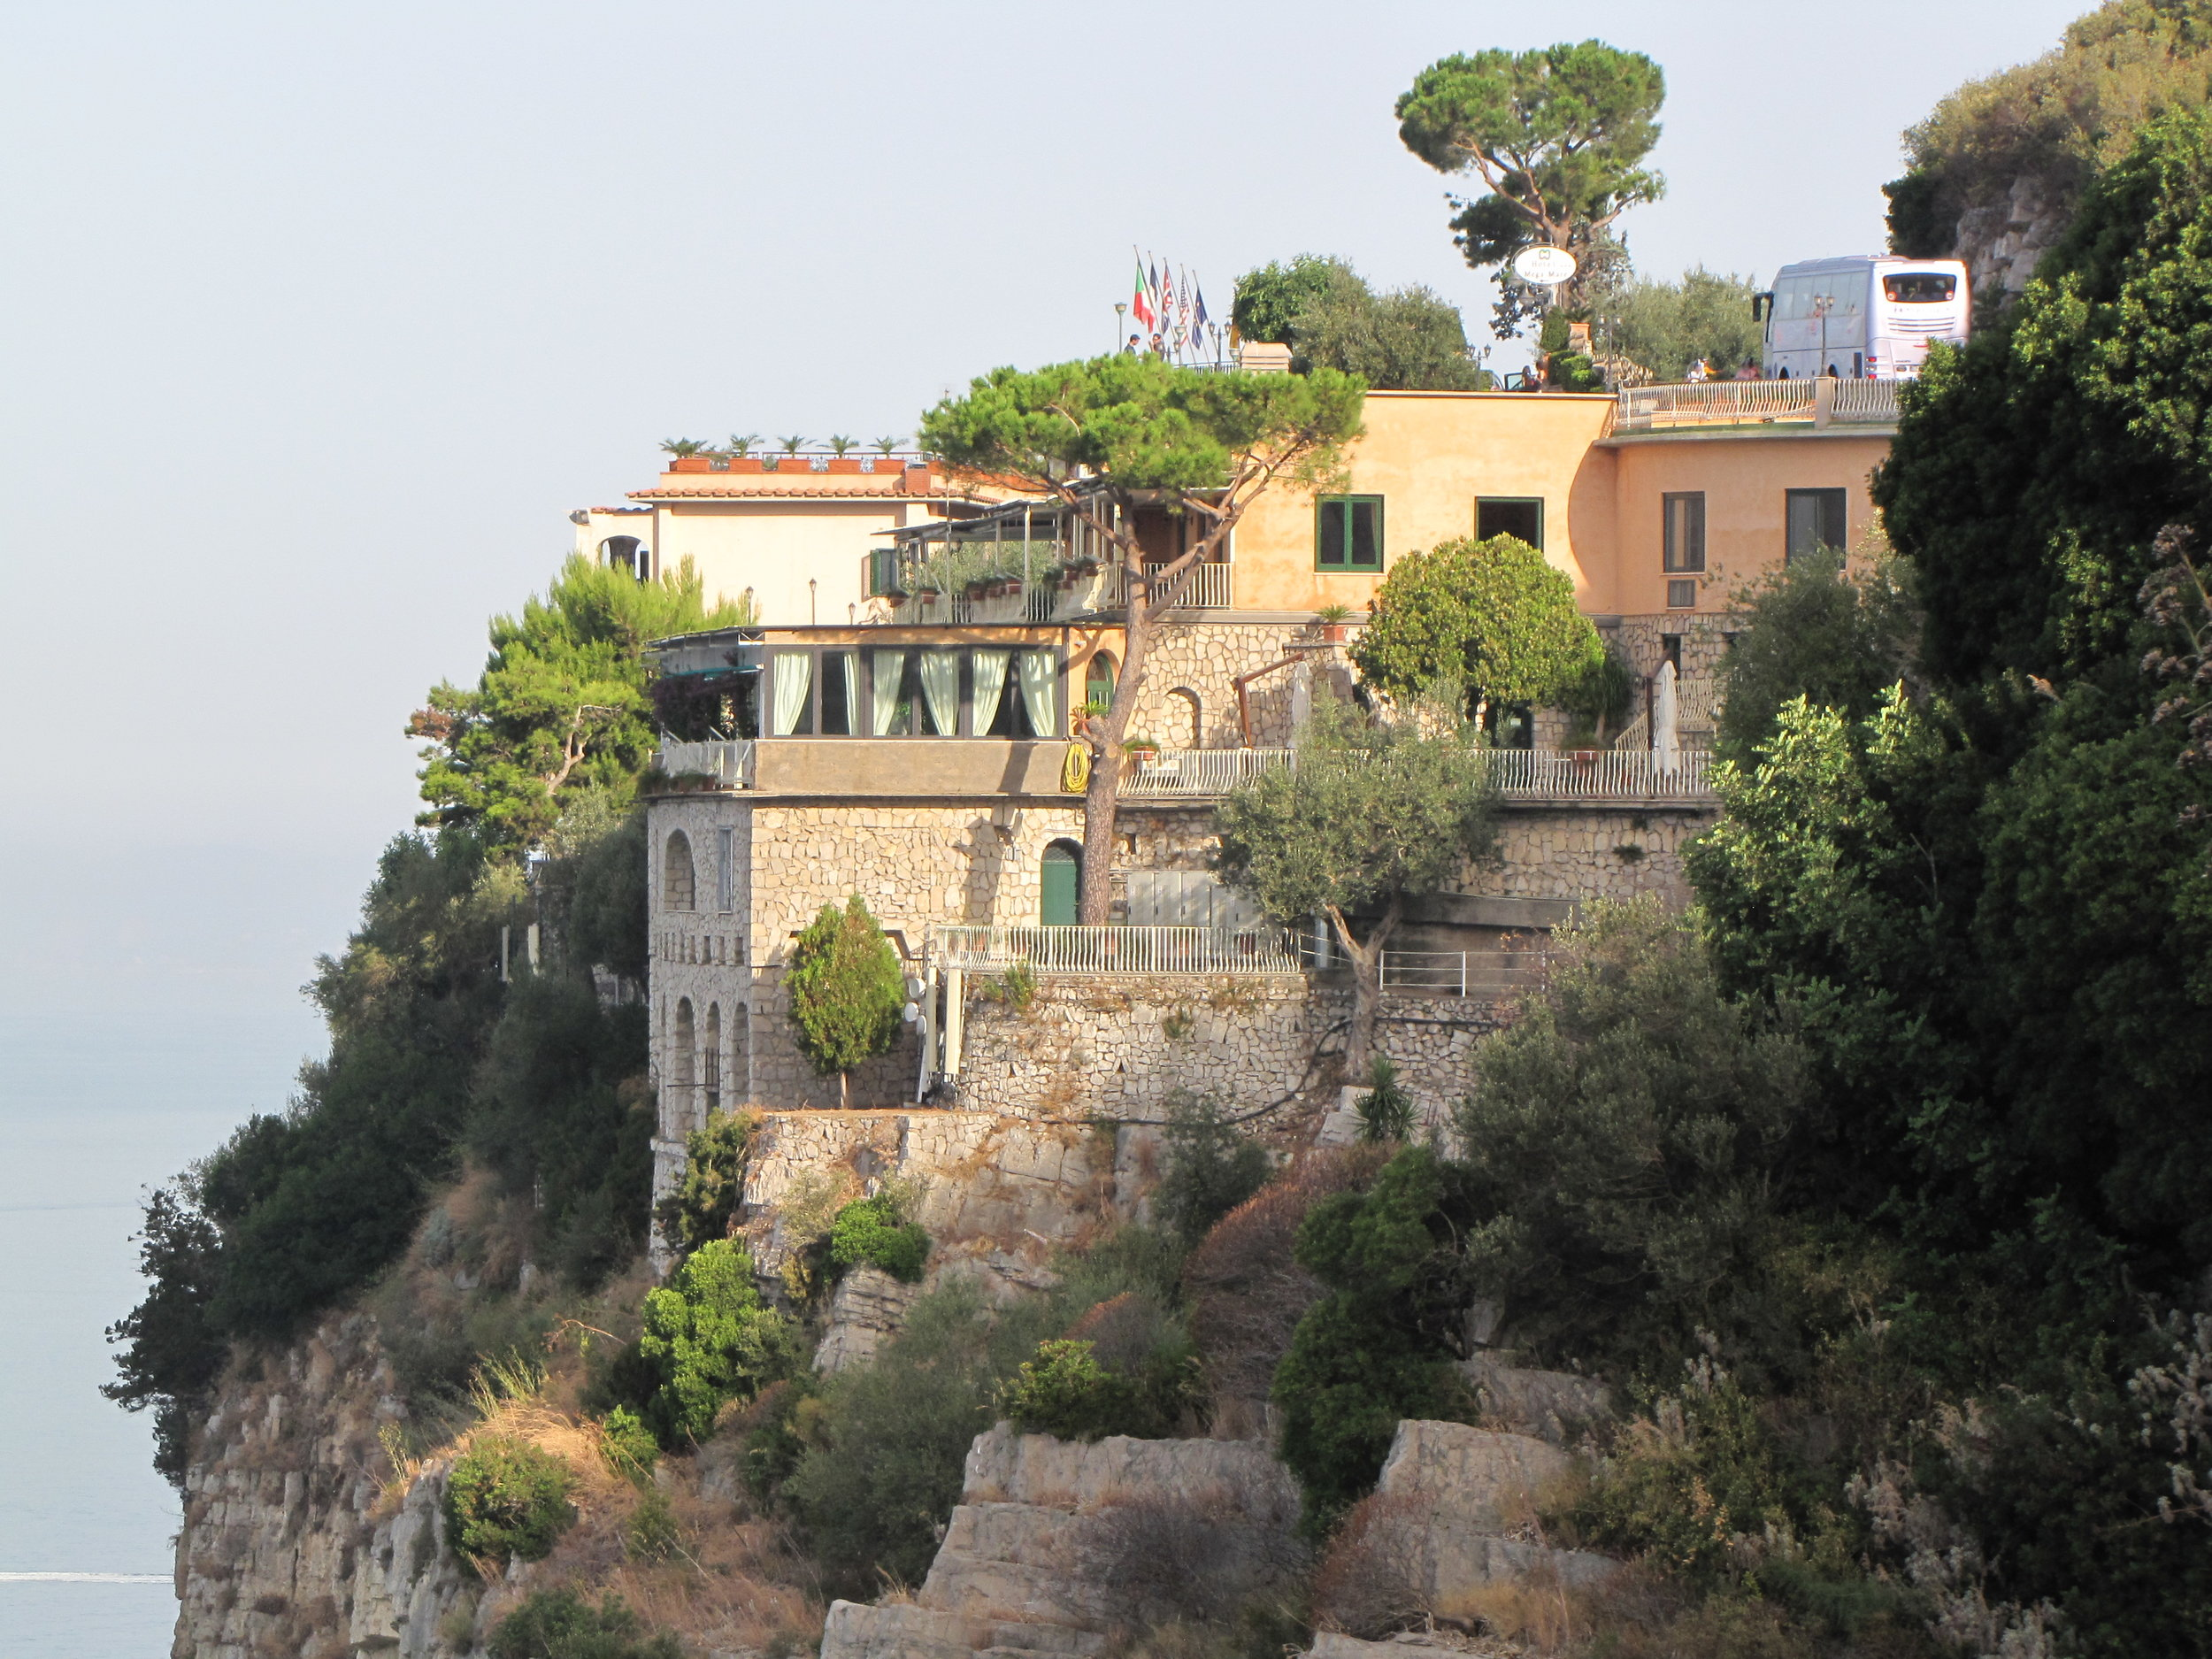 A cliff side villa on the Amalfi Coast